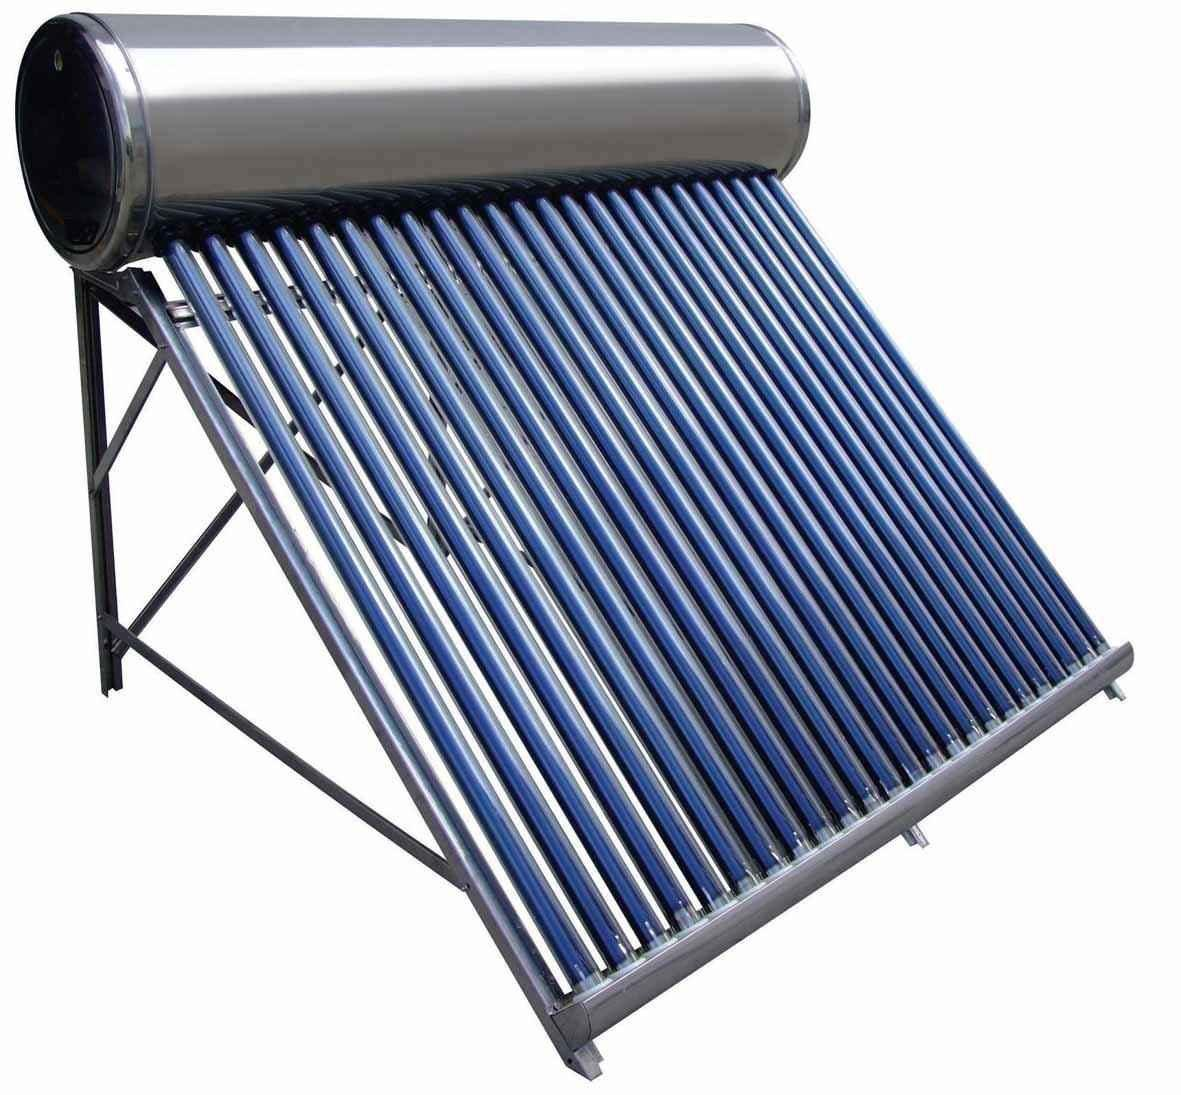 Stainless Steel Solar Water Heater with Long Time Werrenty